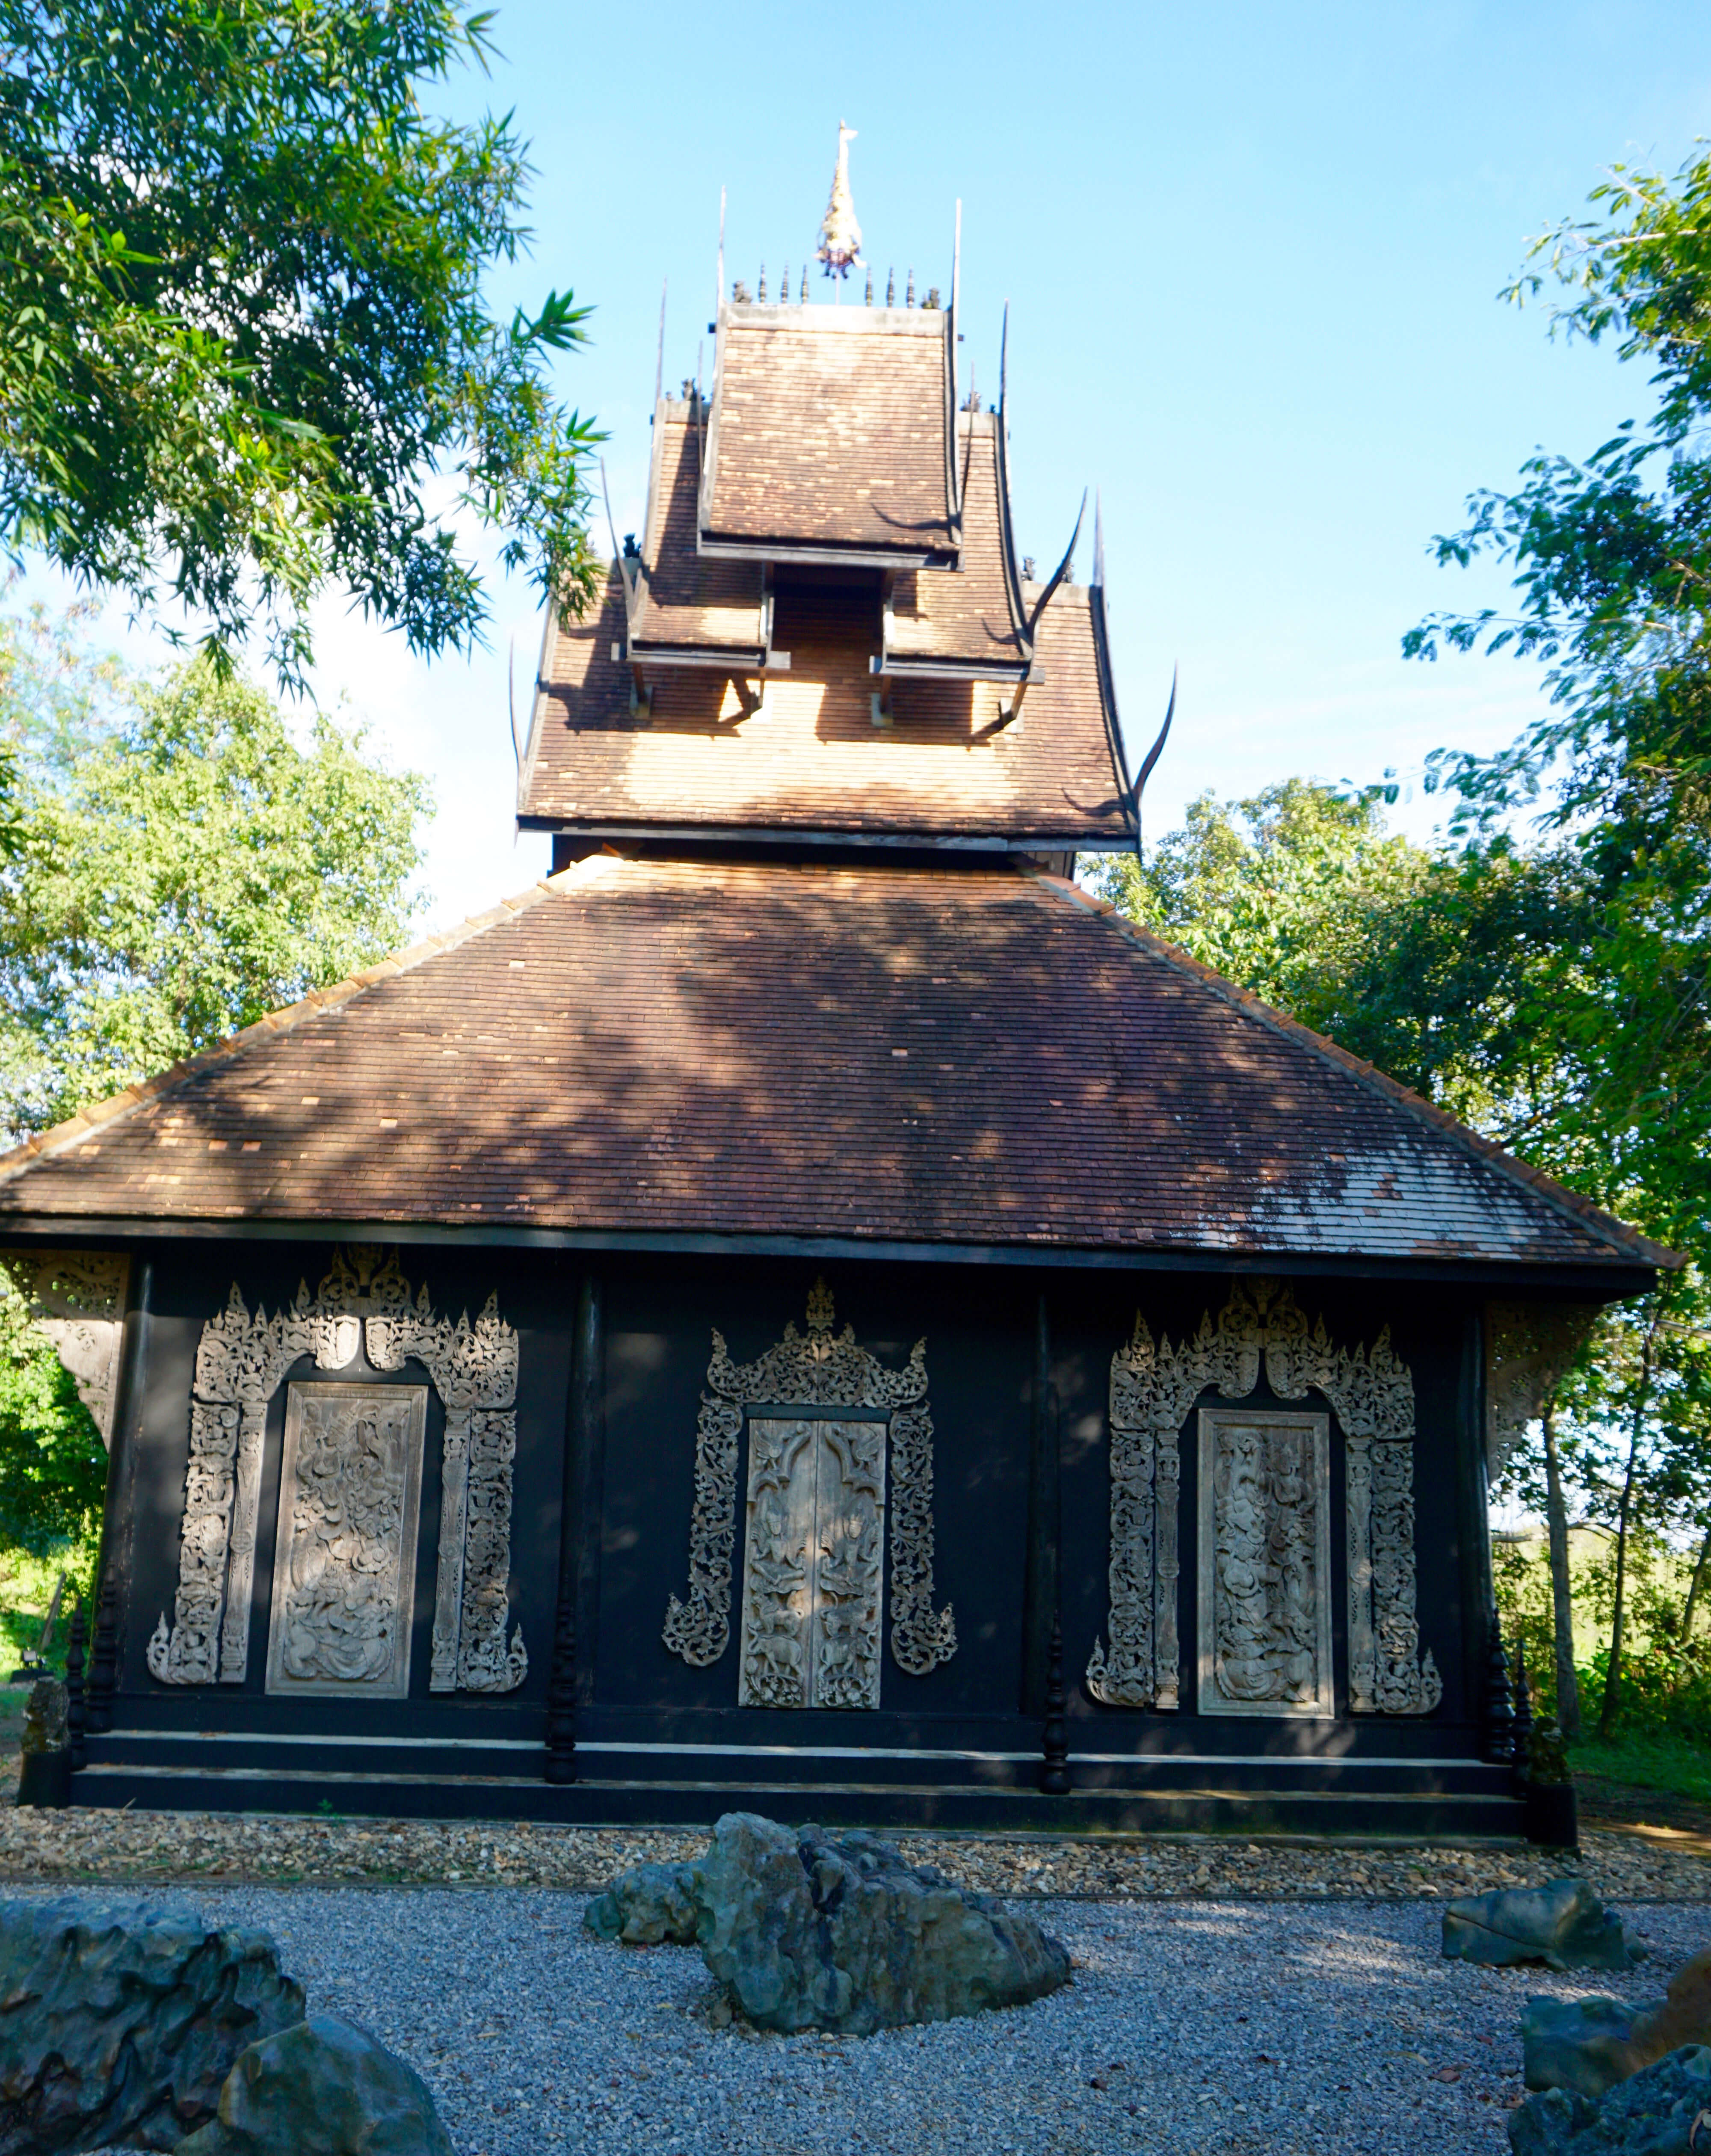 outbuilding at the baan dam museum Thailand